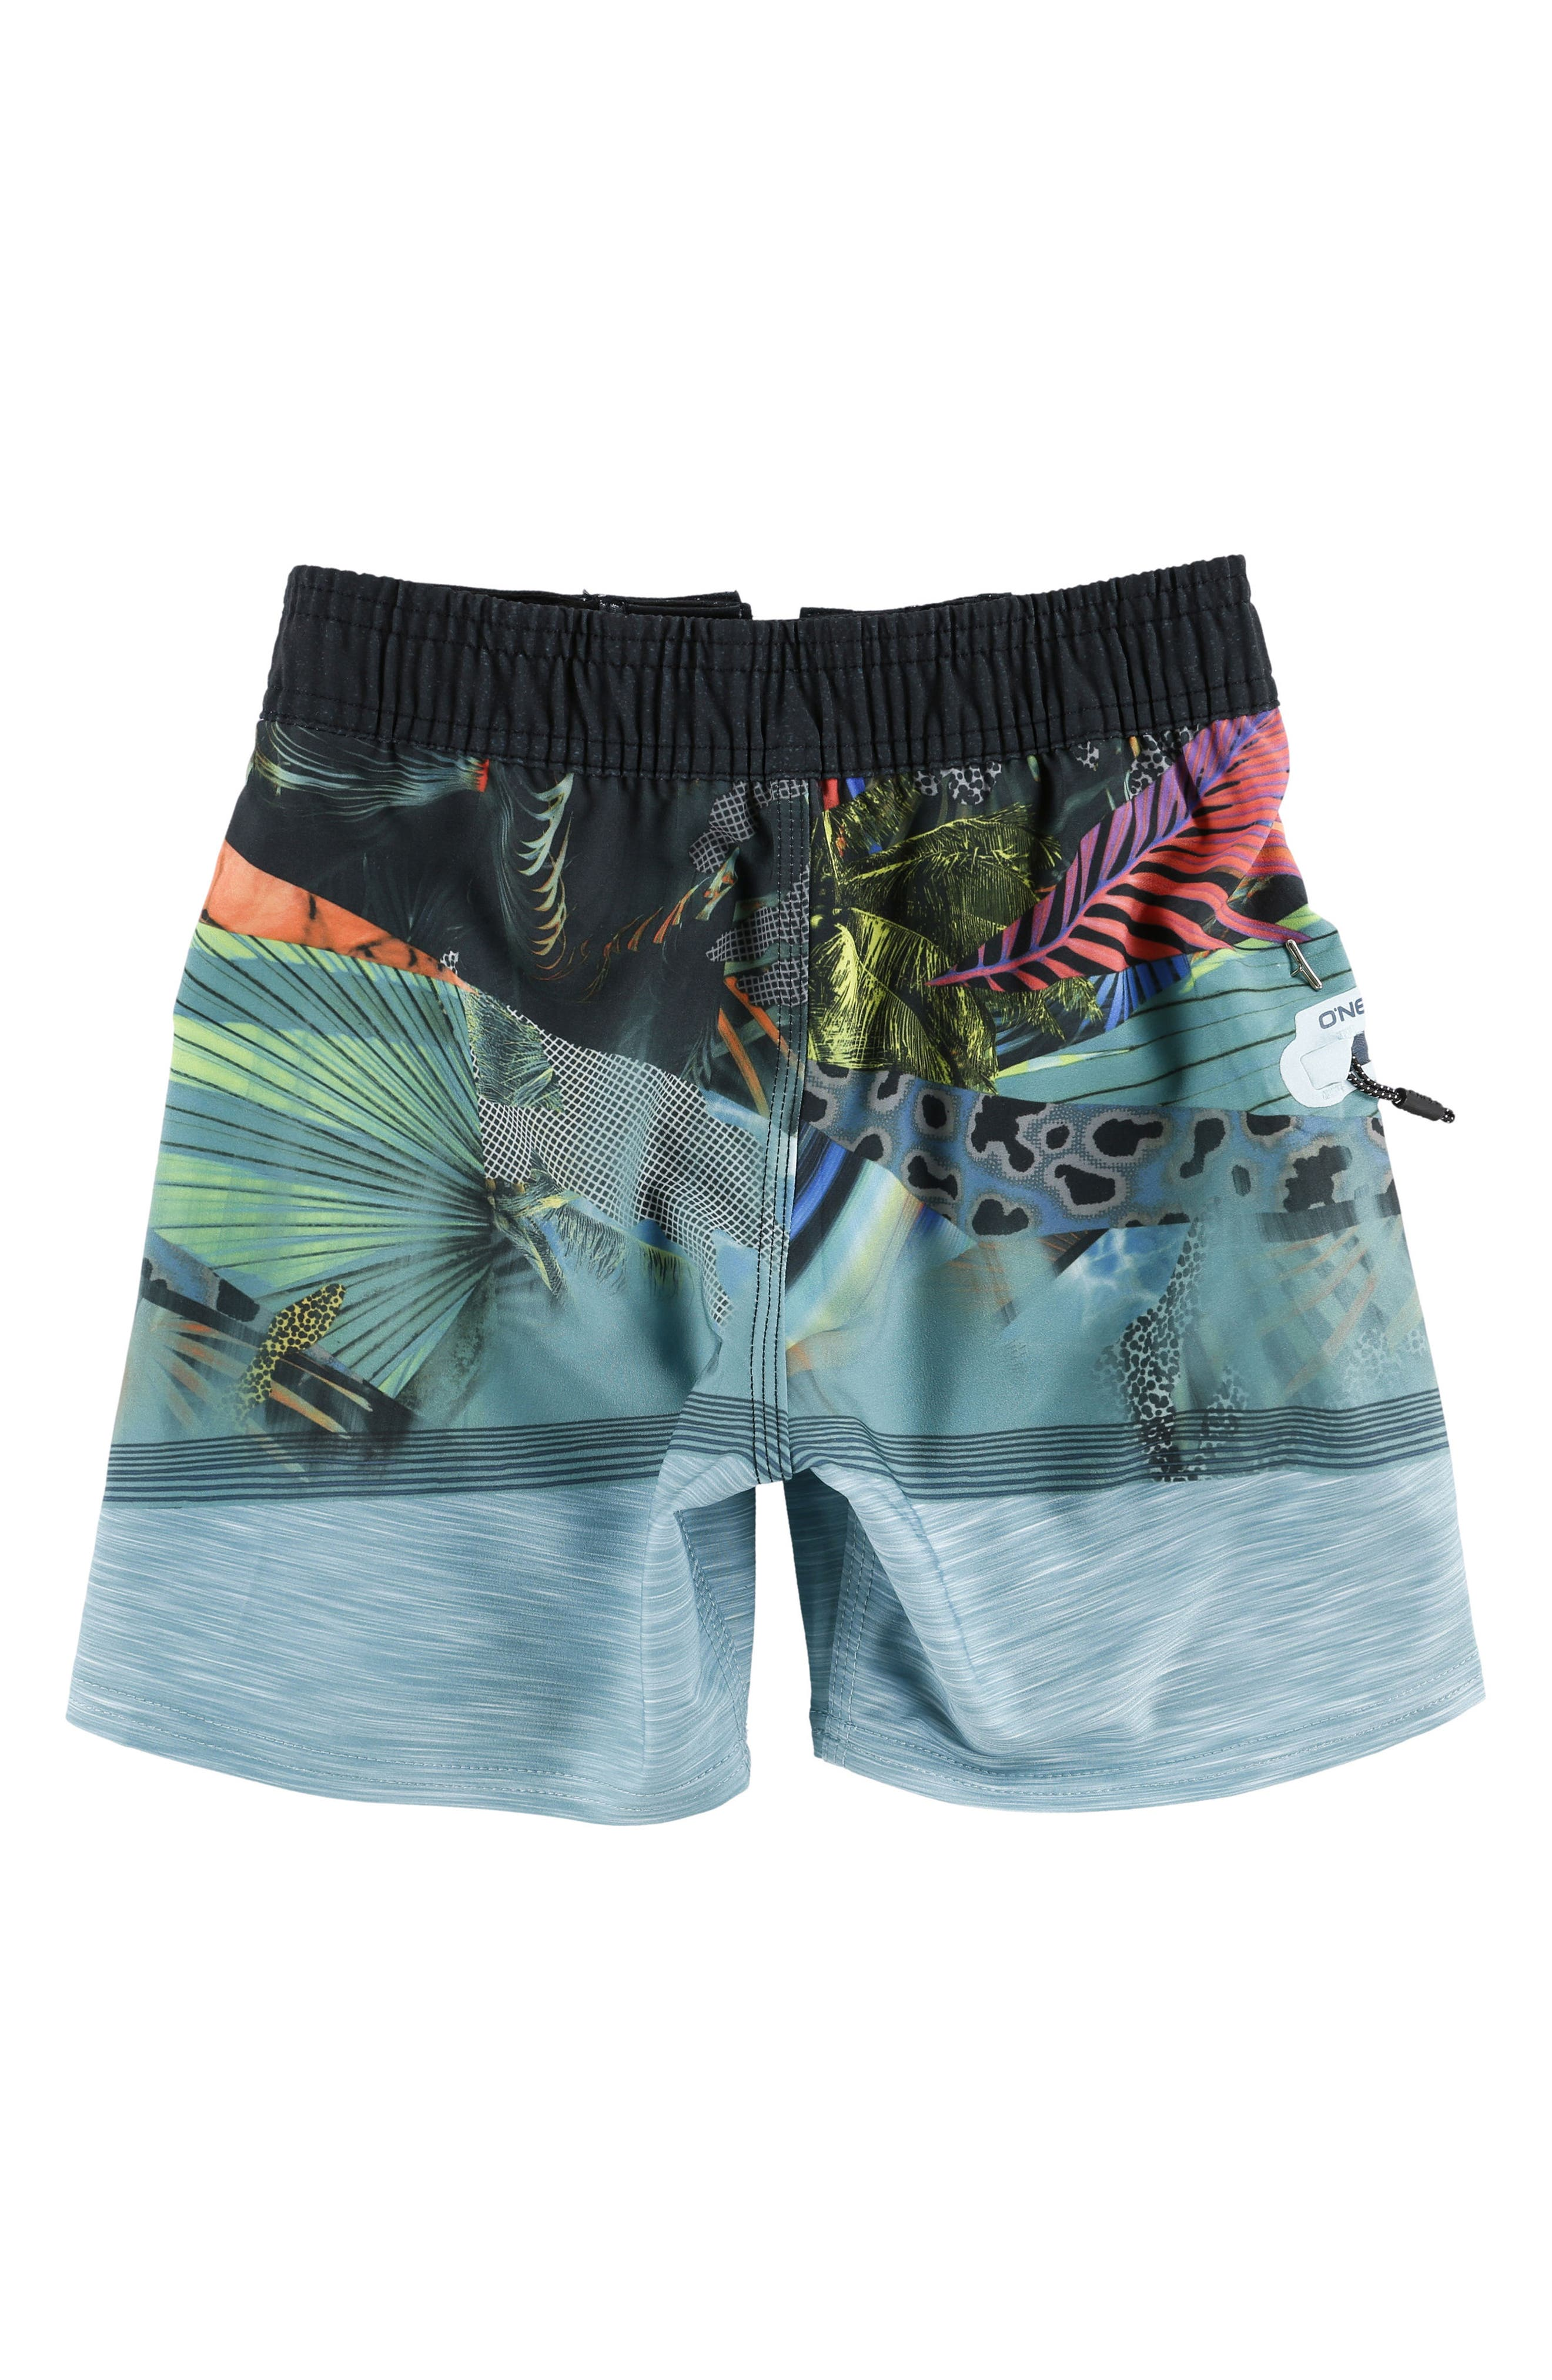 Hyperfreak Board Shorts,                             Alternate thumbnail 3, color,